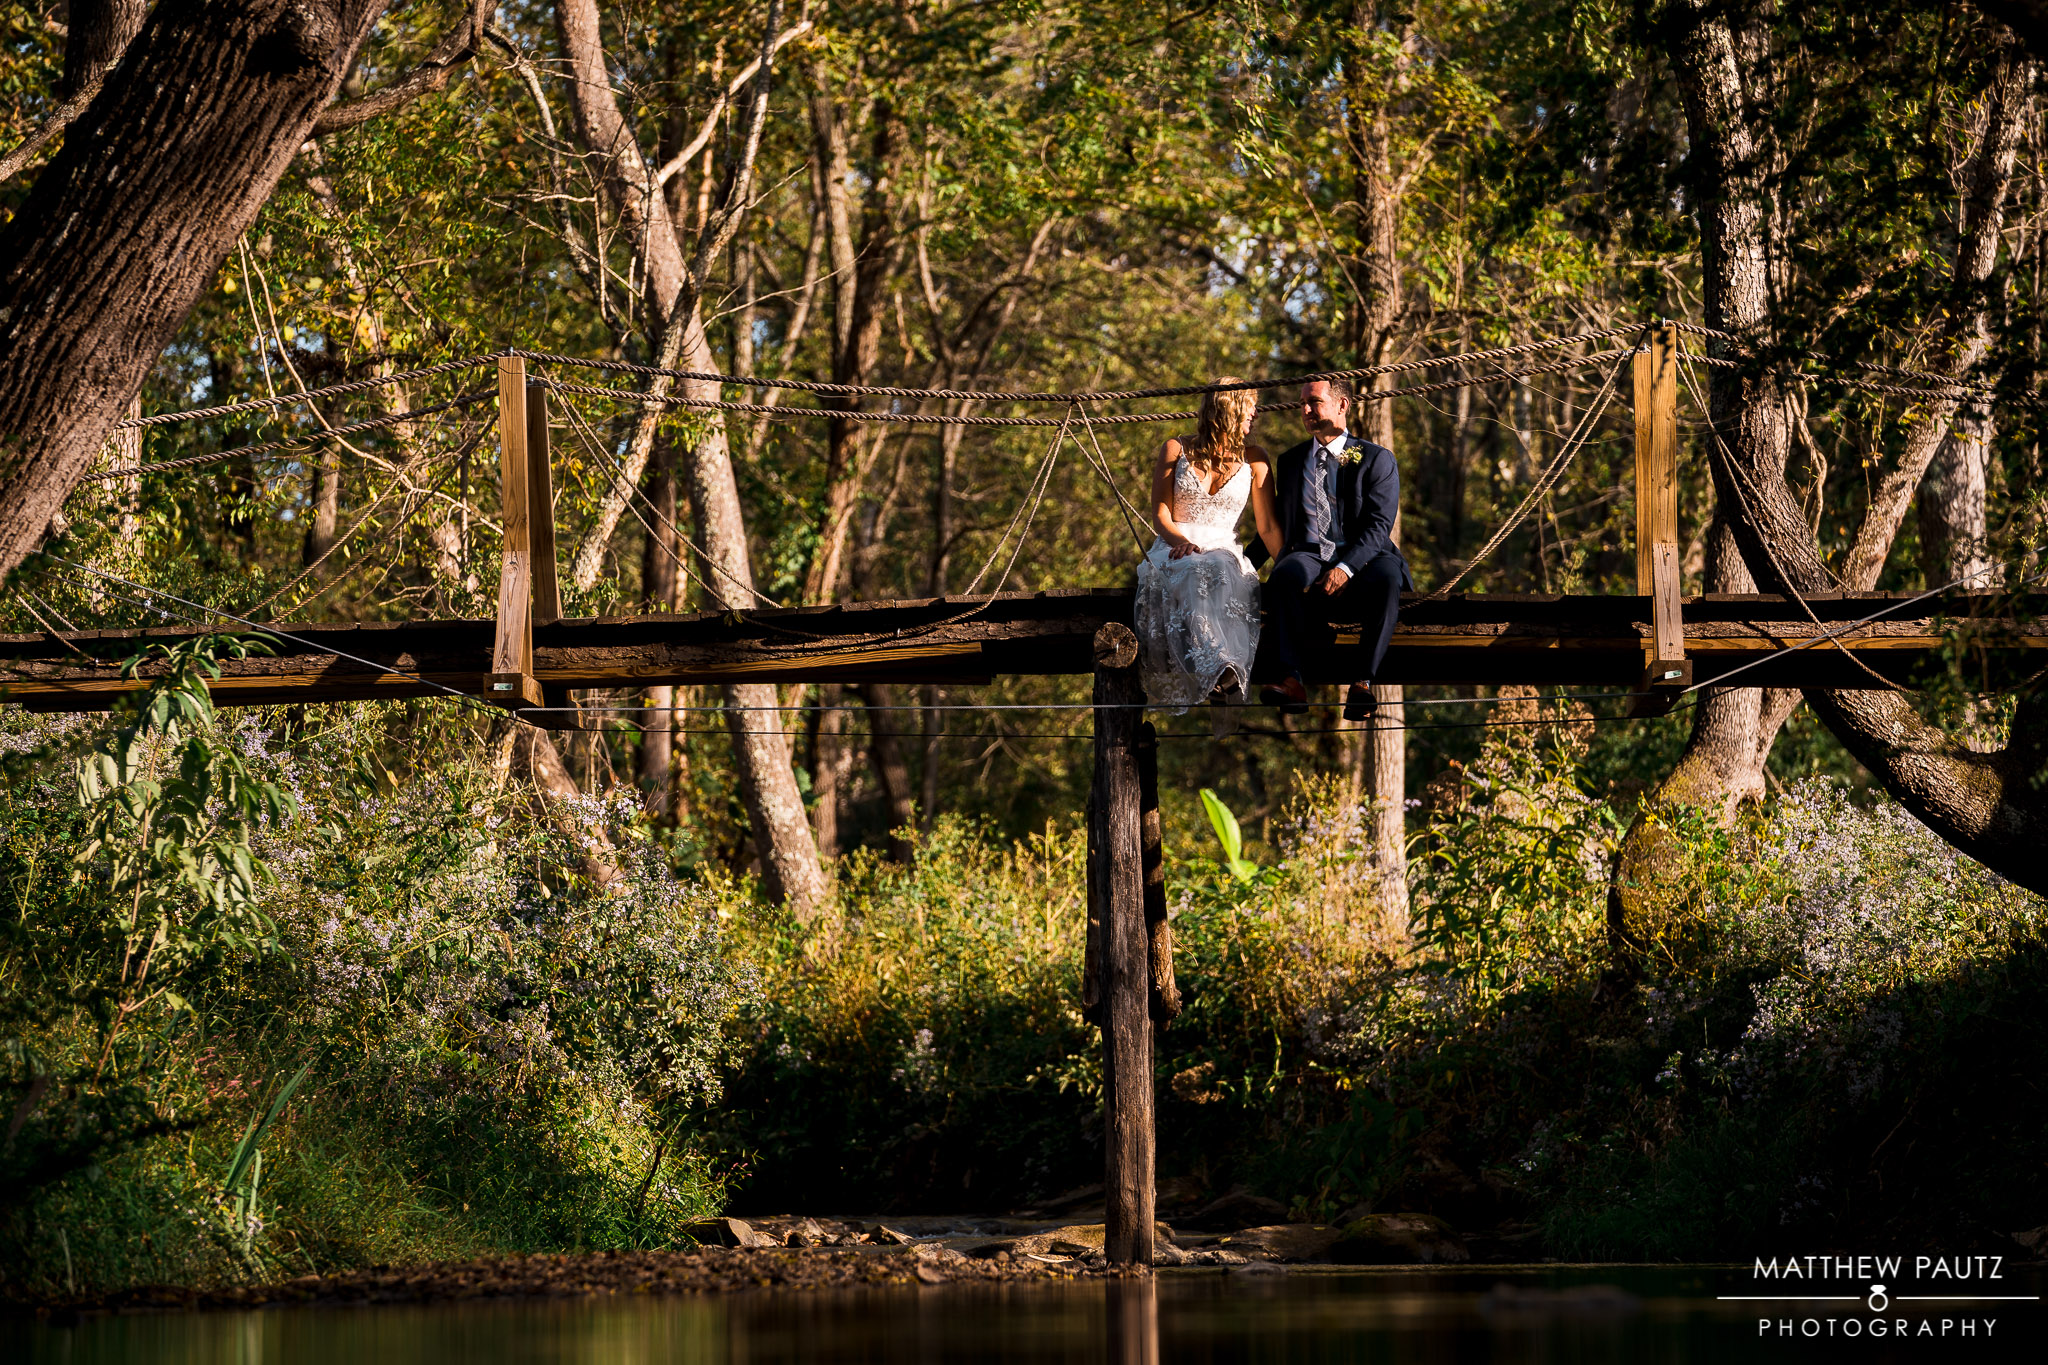 Bride and groom sitting on bridge together after wedding ceremony in Asheville